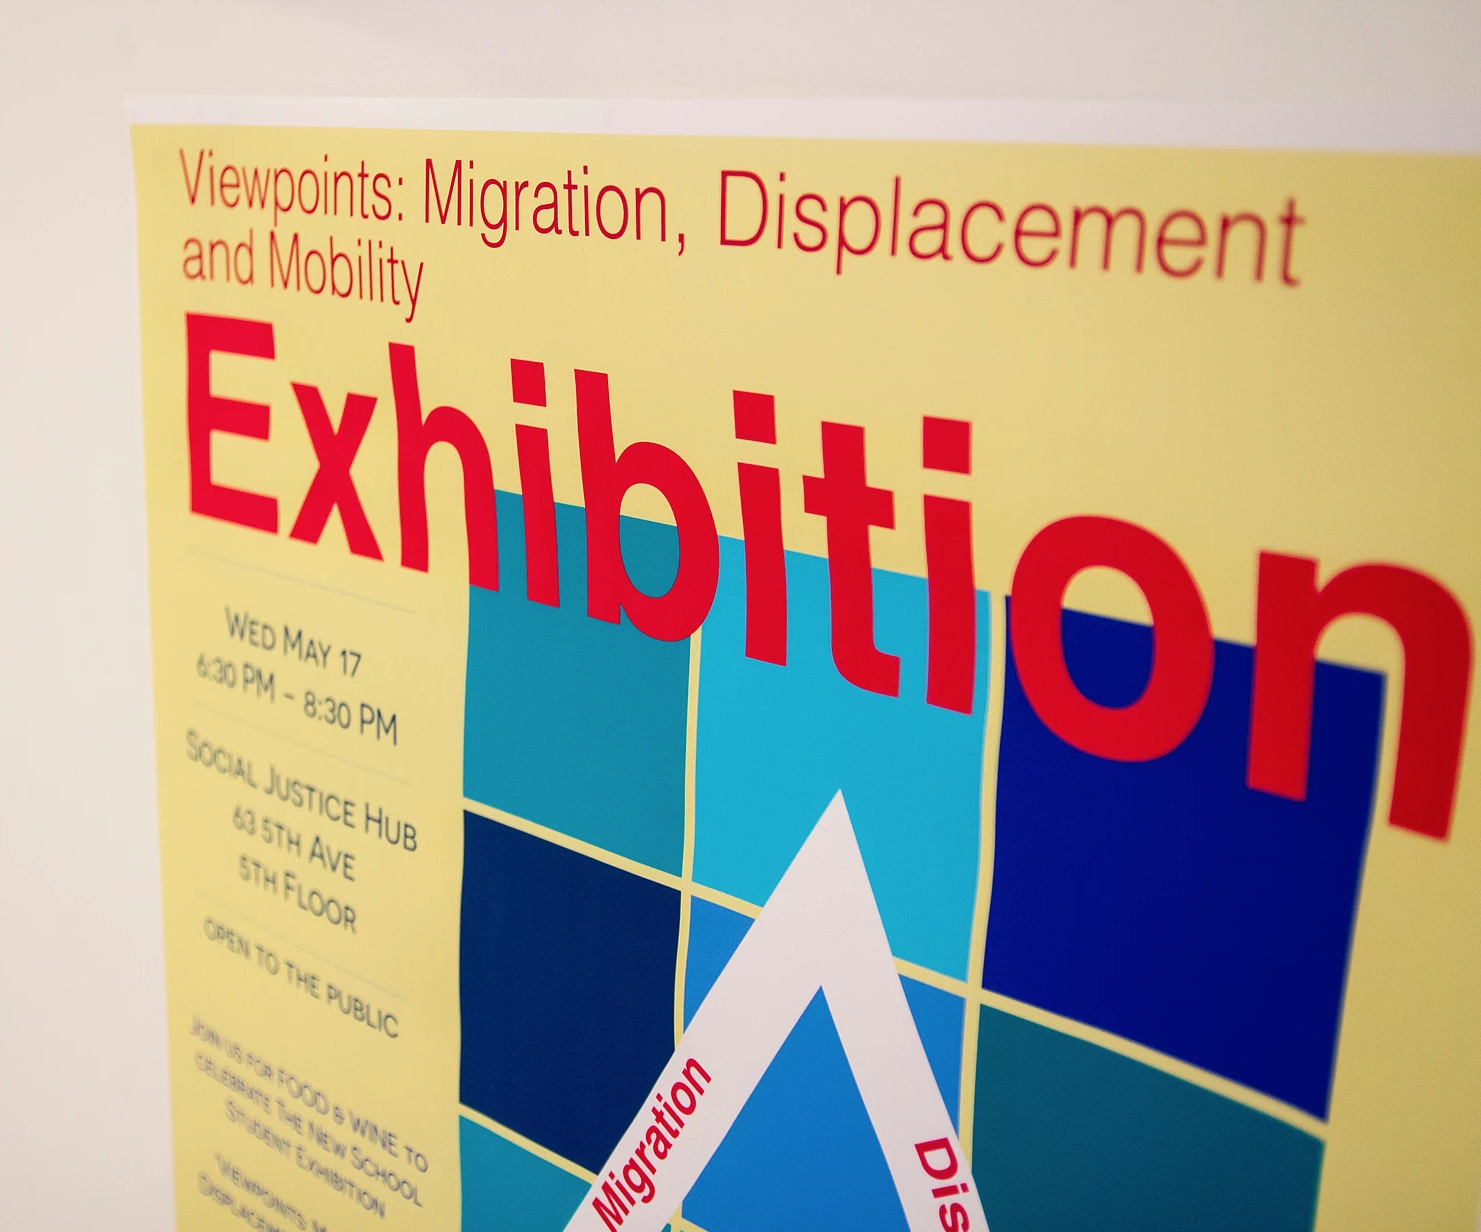 Viewpoints Exhibition